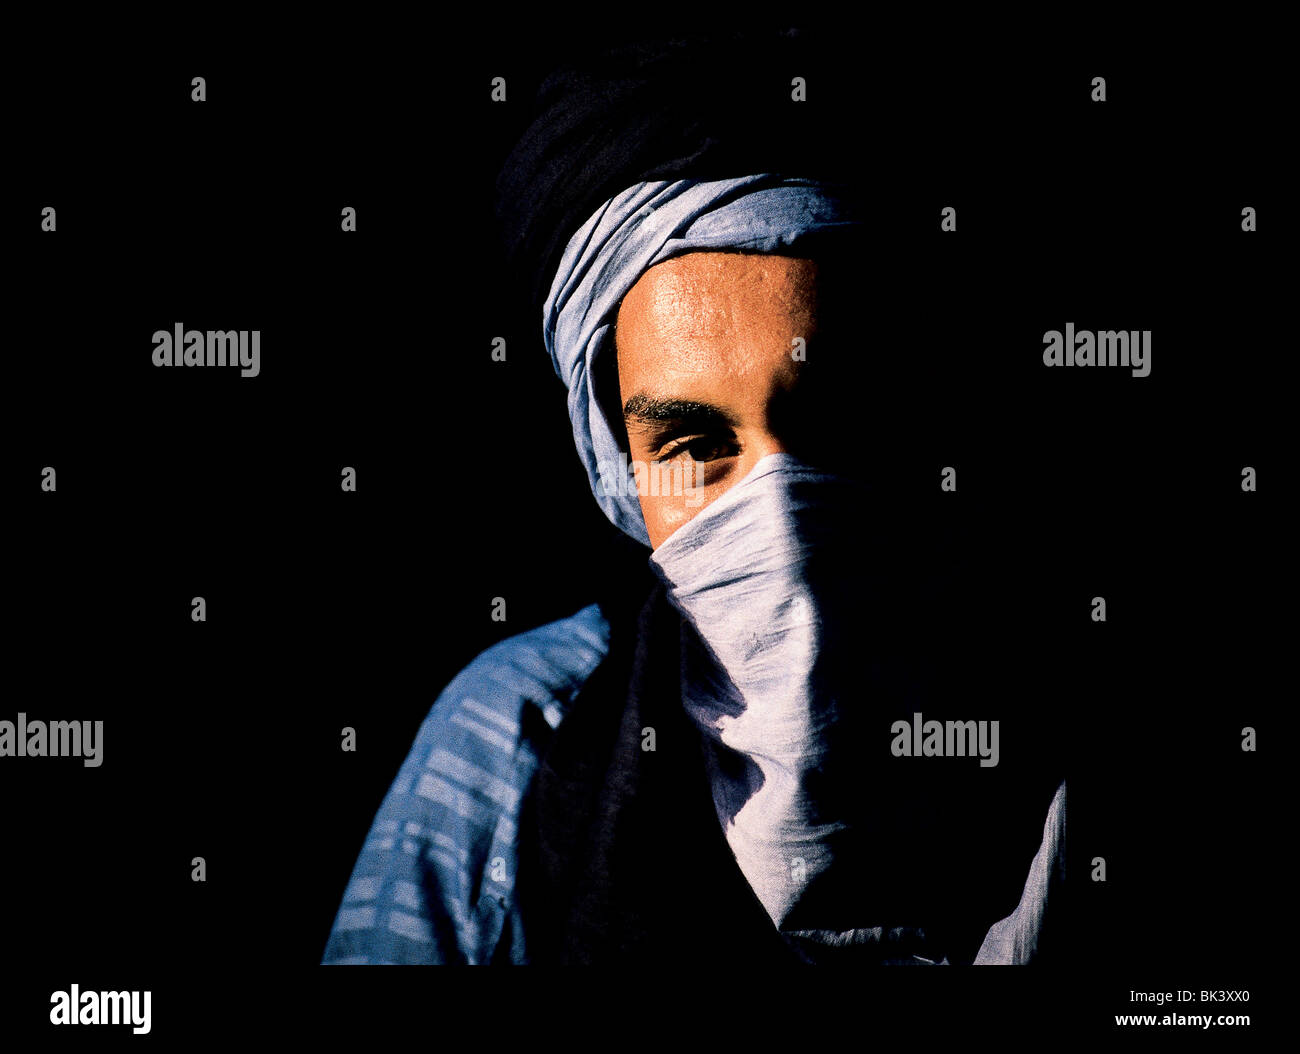 Adult male wearing a turban which forms part of his protective face mask, Ouarzazate, Morocco - Stock Image